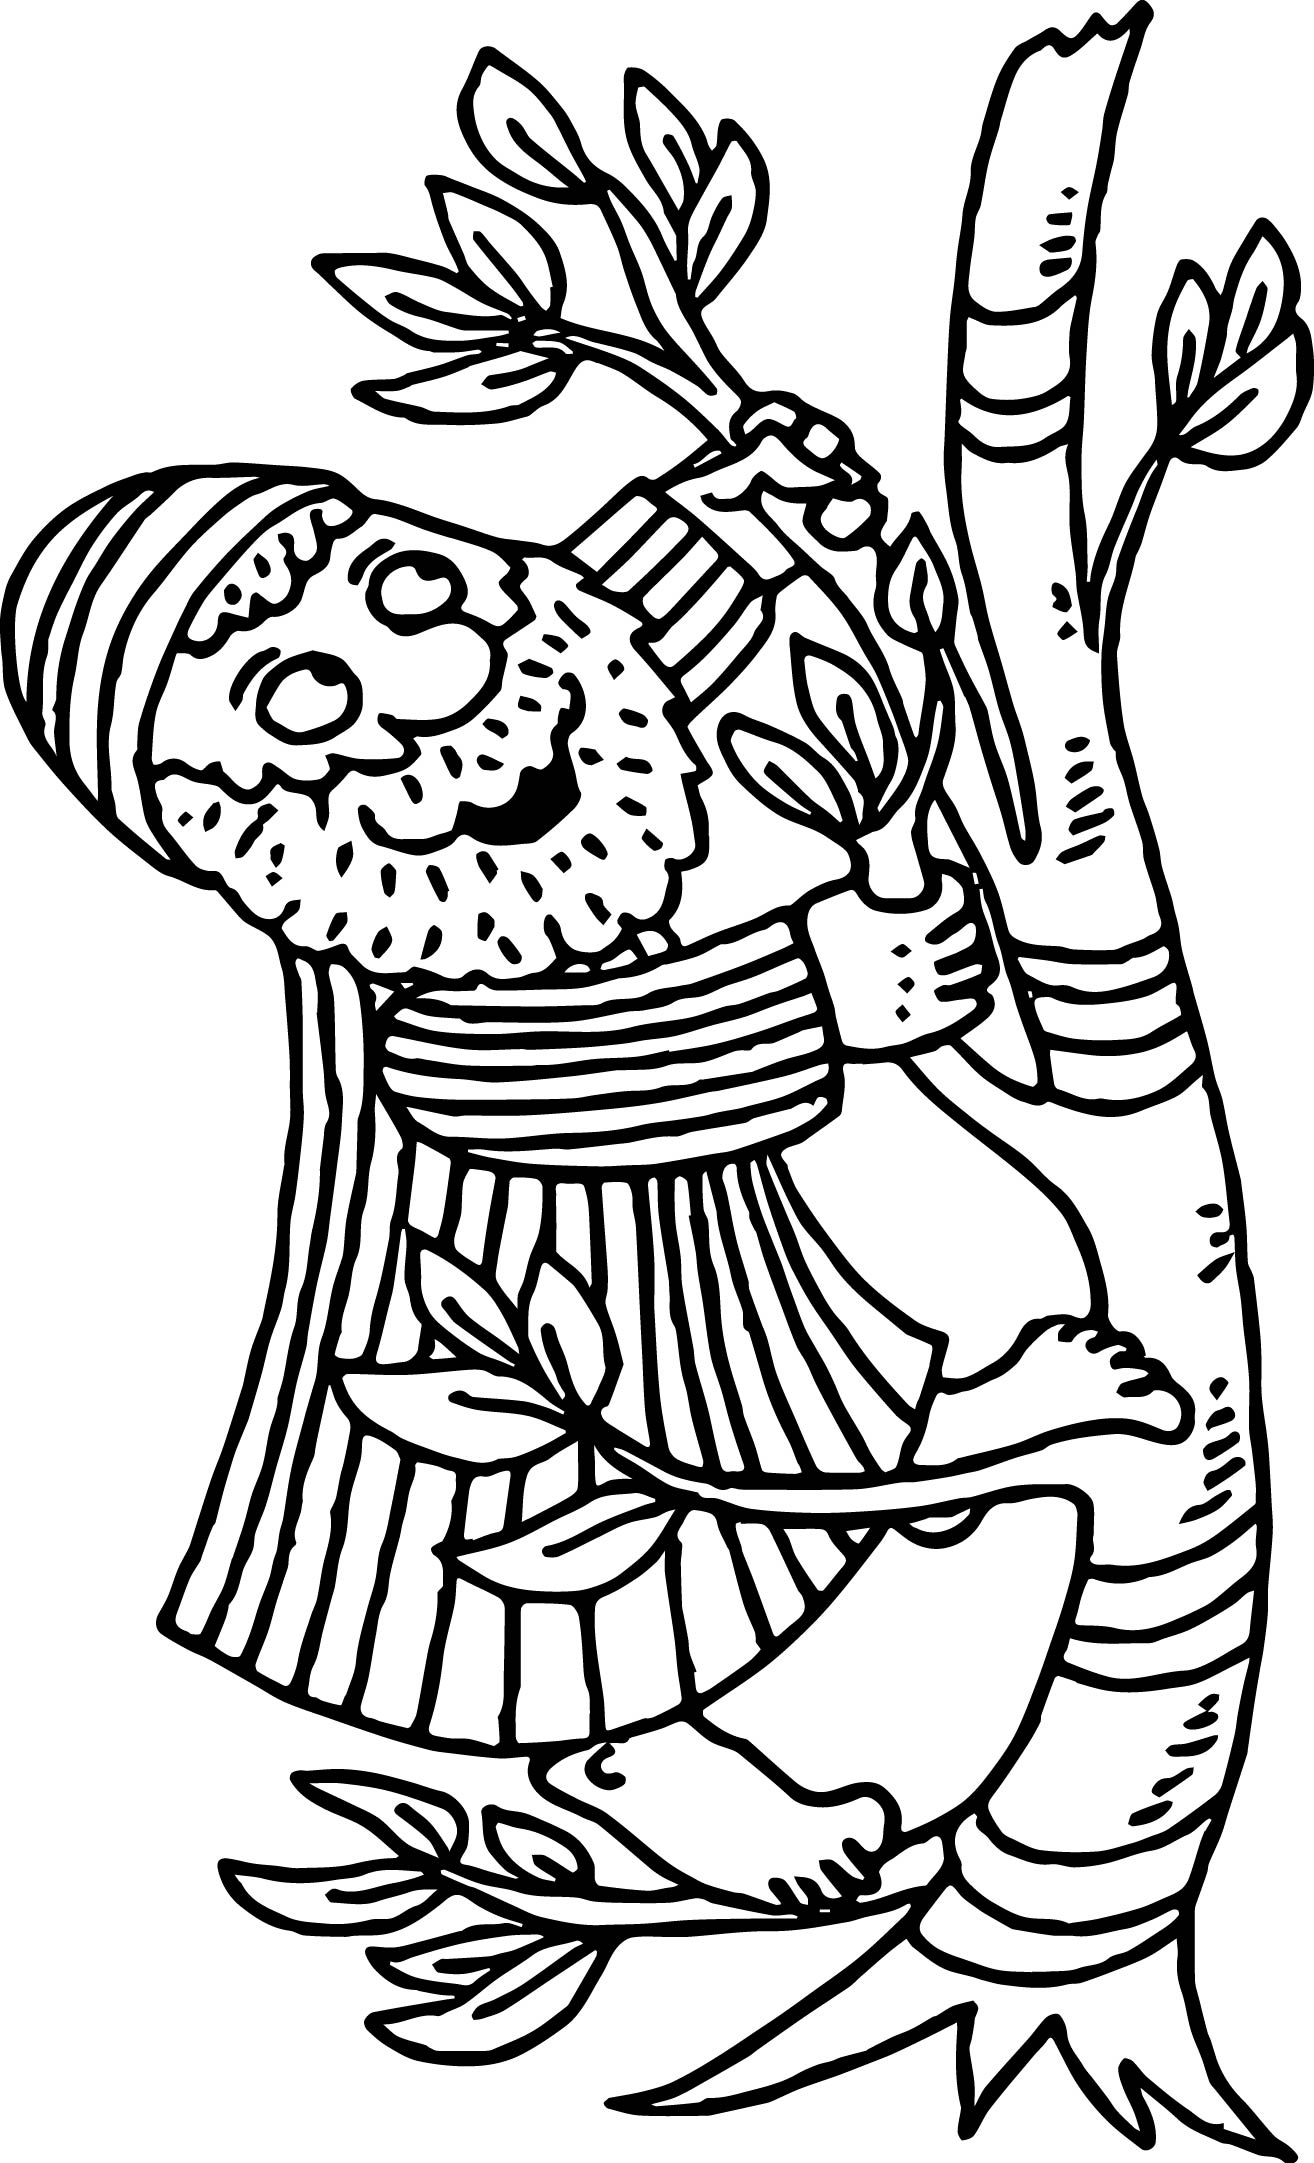 Coloring Page Zacchaeus - Free Coloring Page